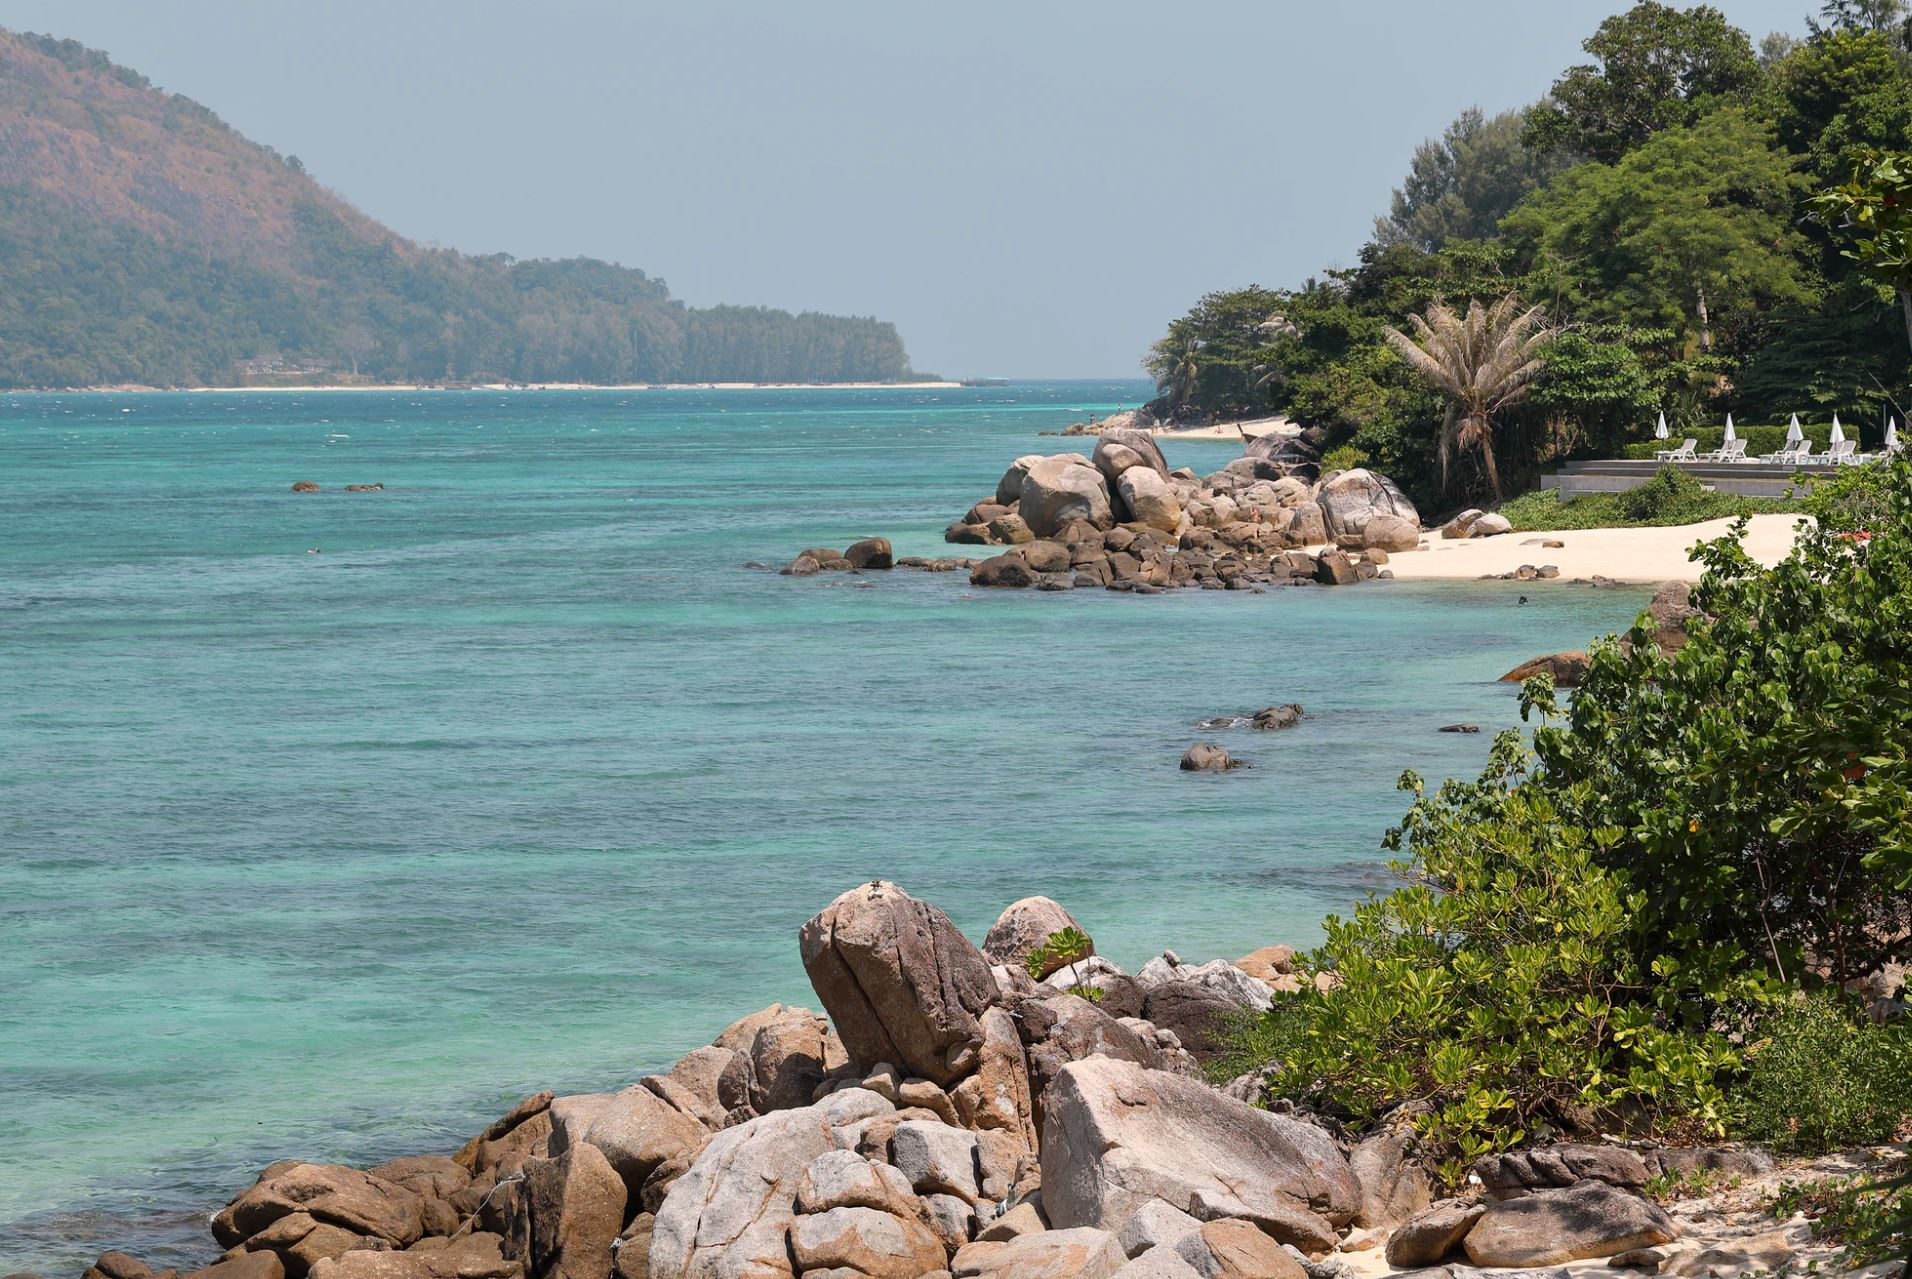 Trees by the water in Koh Lipe | Maksim Shutov/Unsplash